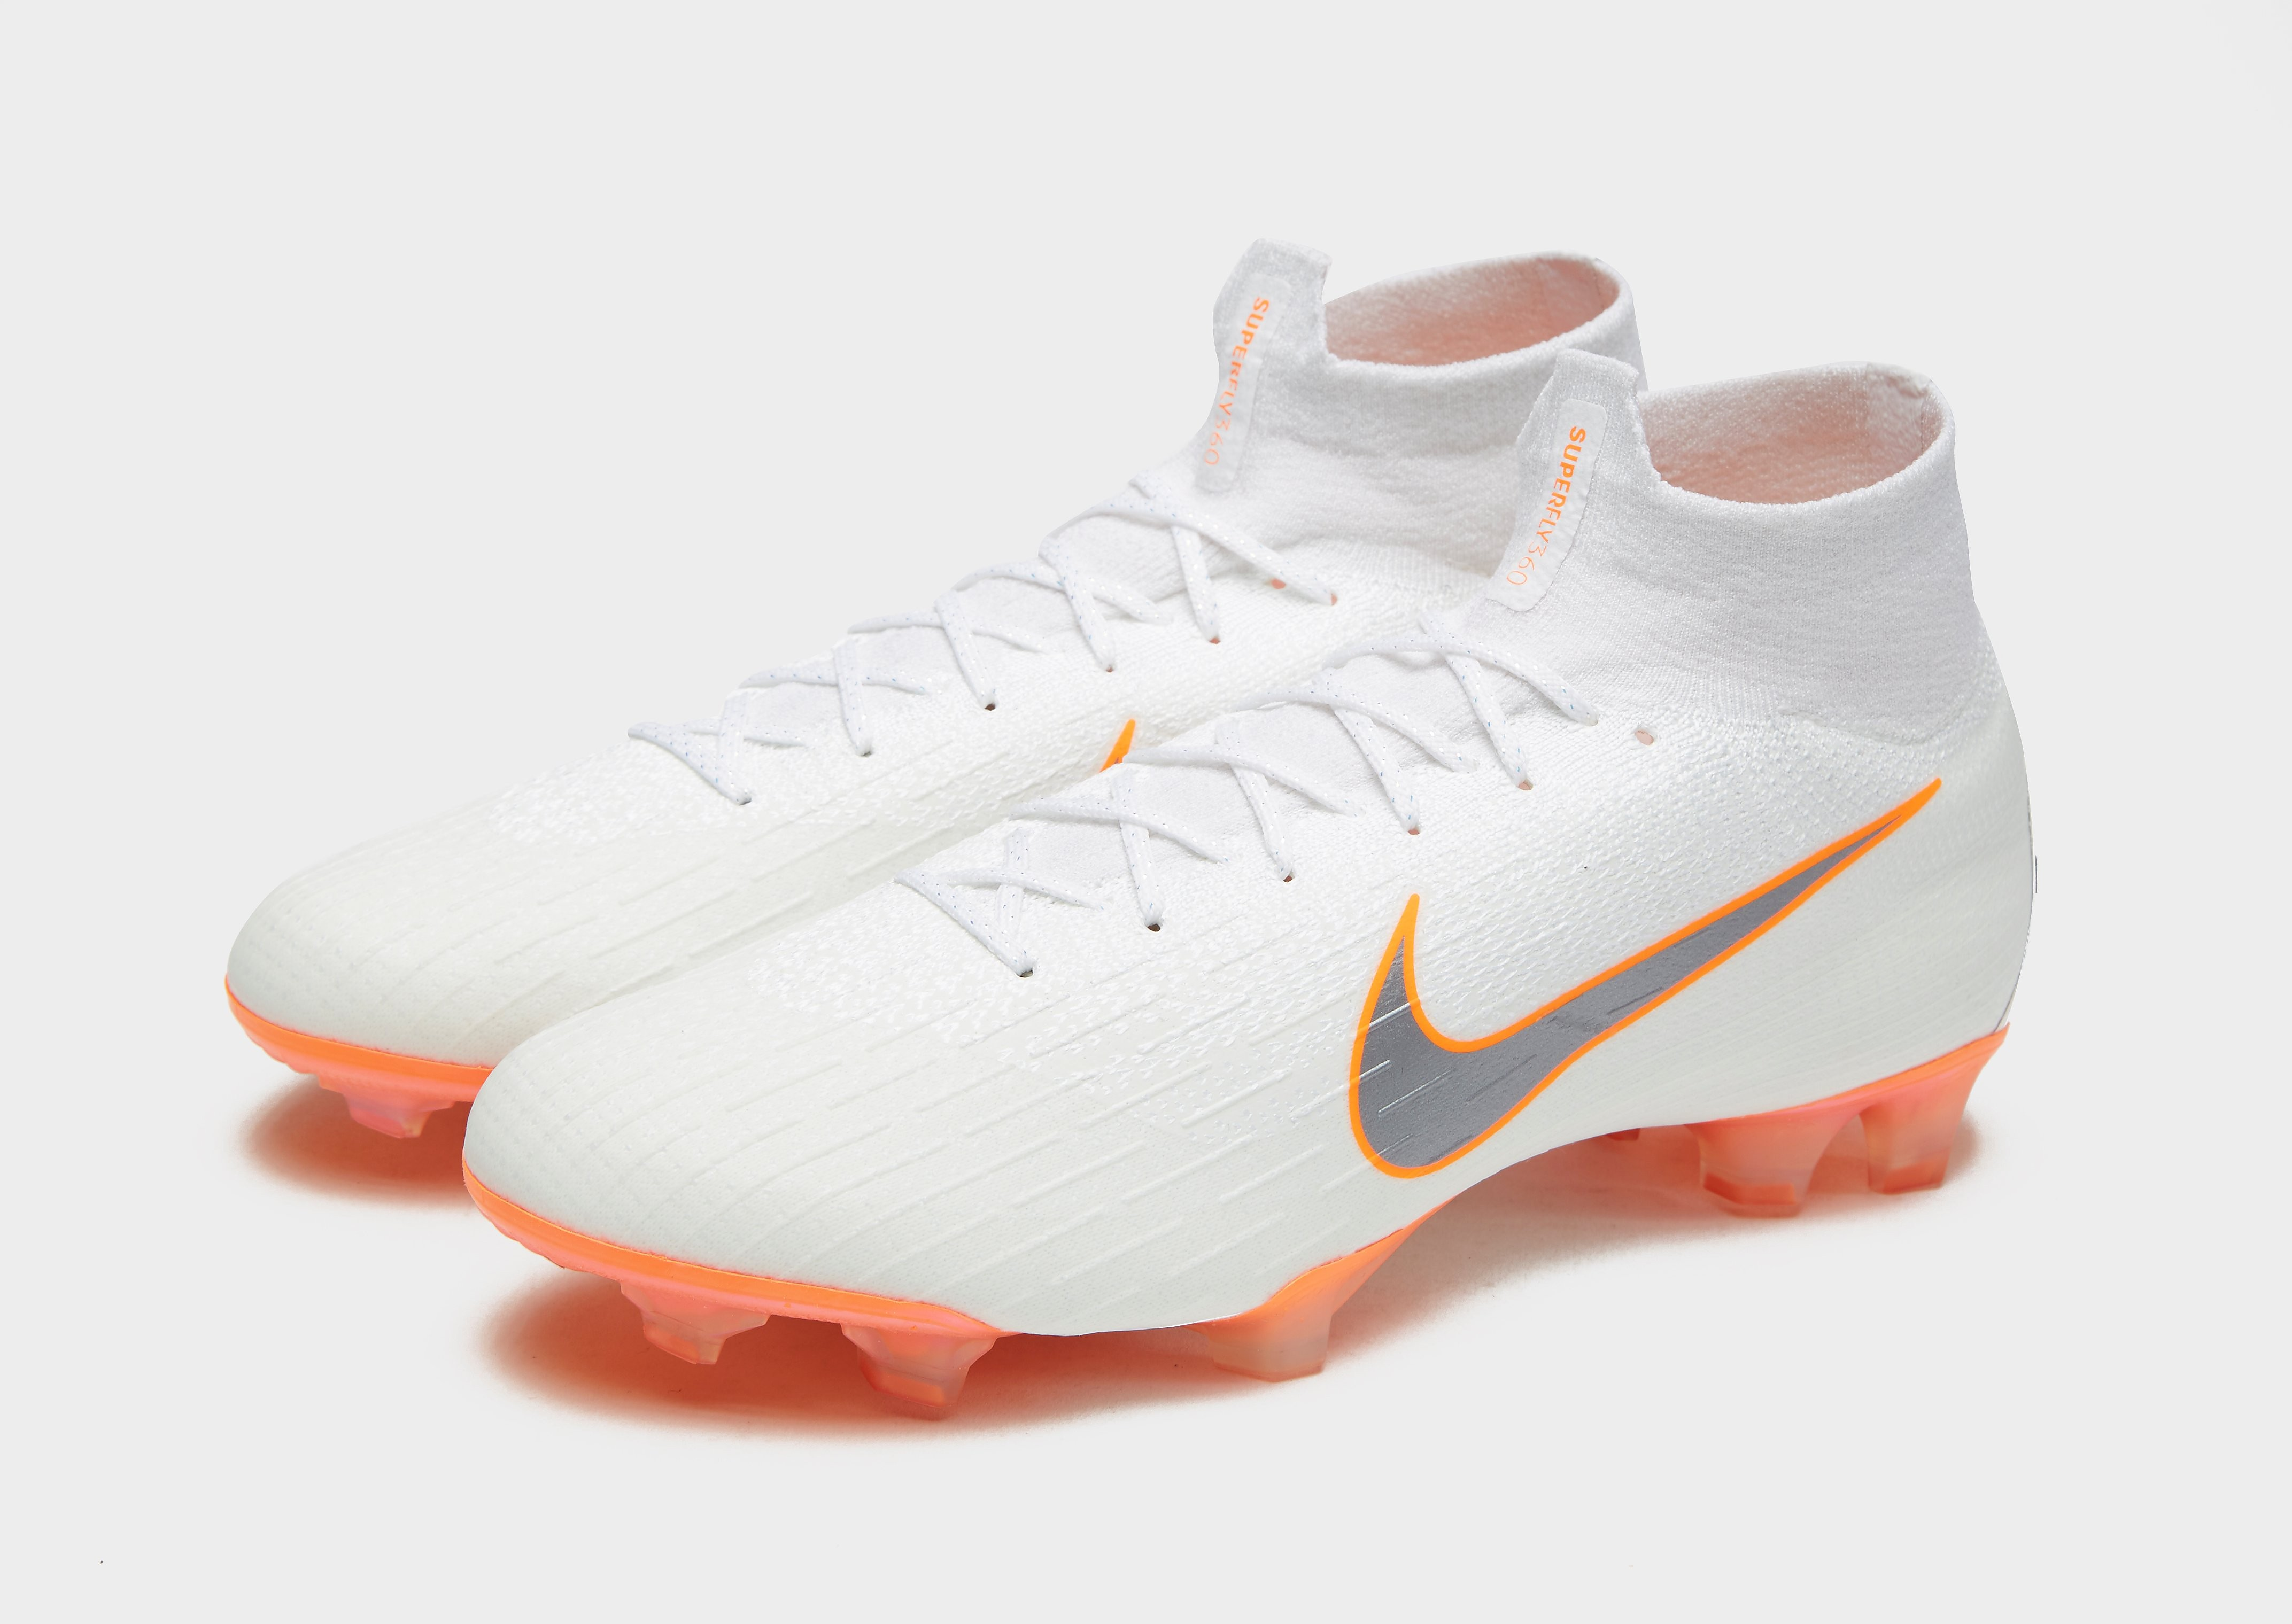 Nike Just Do It Mercurial Superfly Dynamic Fit FG